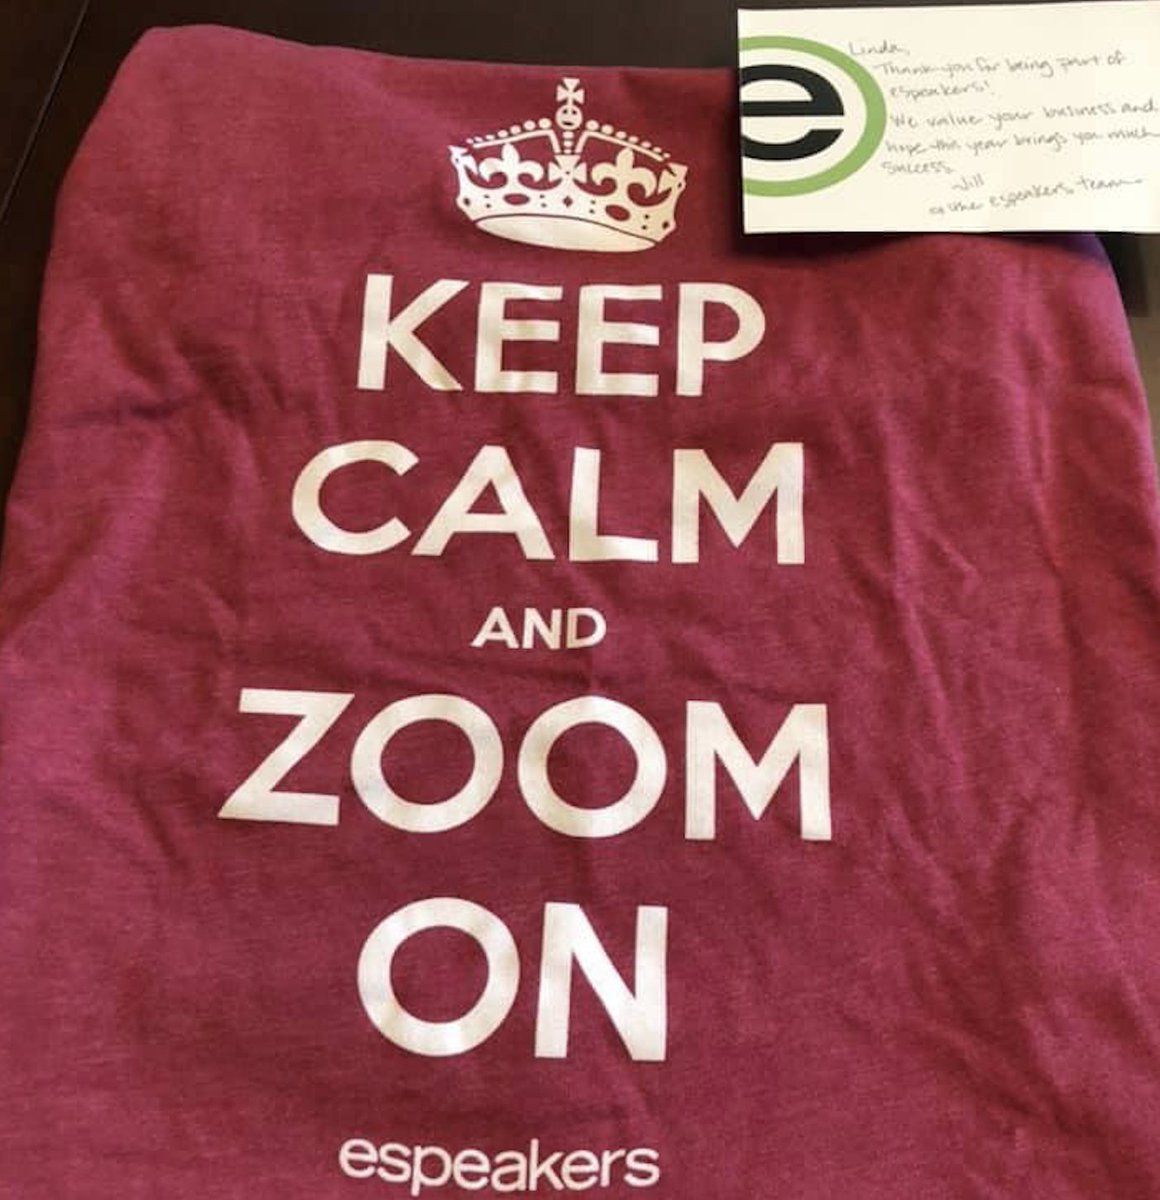 Thank you https://t.co/ZgHWZLmW7y LOVE my Zoom on Shirt and our friendship all these years! #Speakerslife #NSA #zoom #zoomcalls #zooming #meetings #espeakers https://t.co/eqio2jFbxn